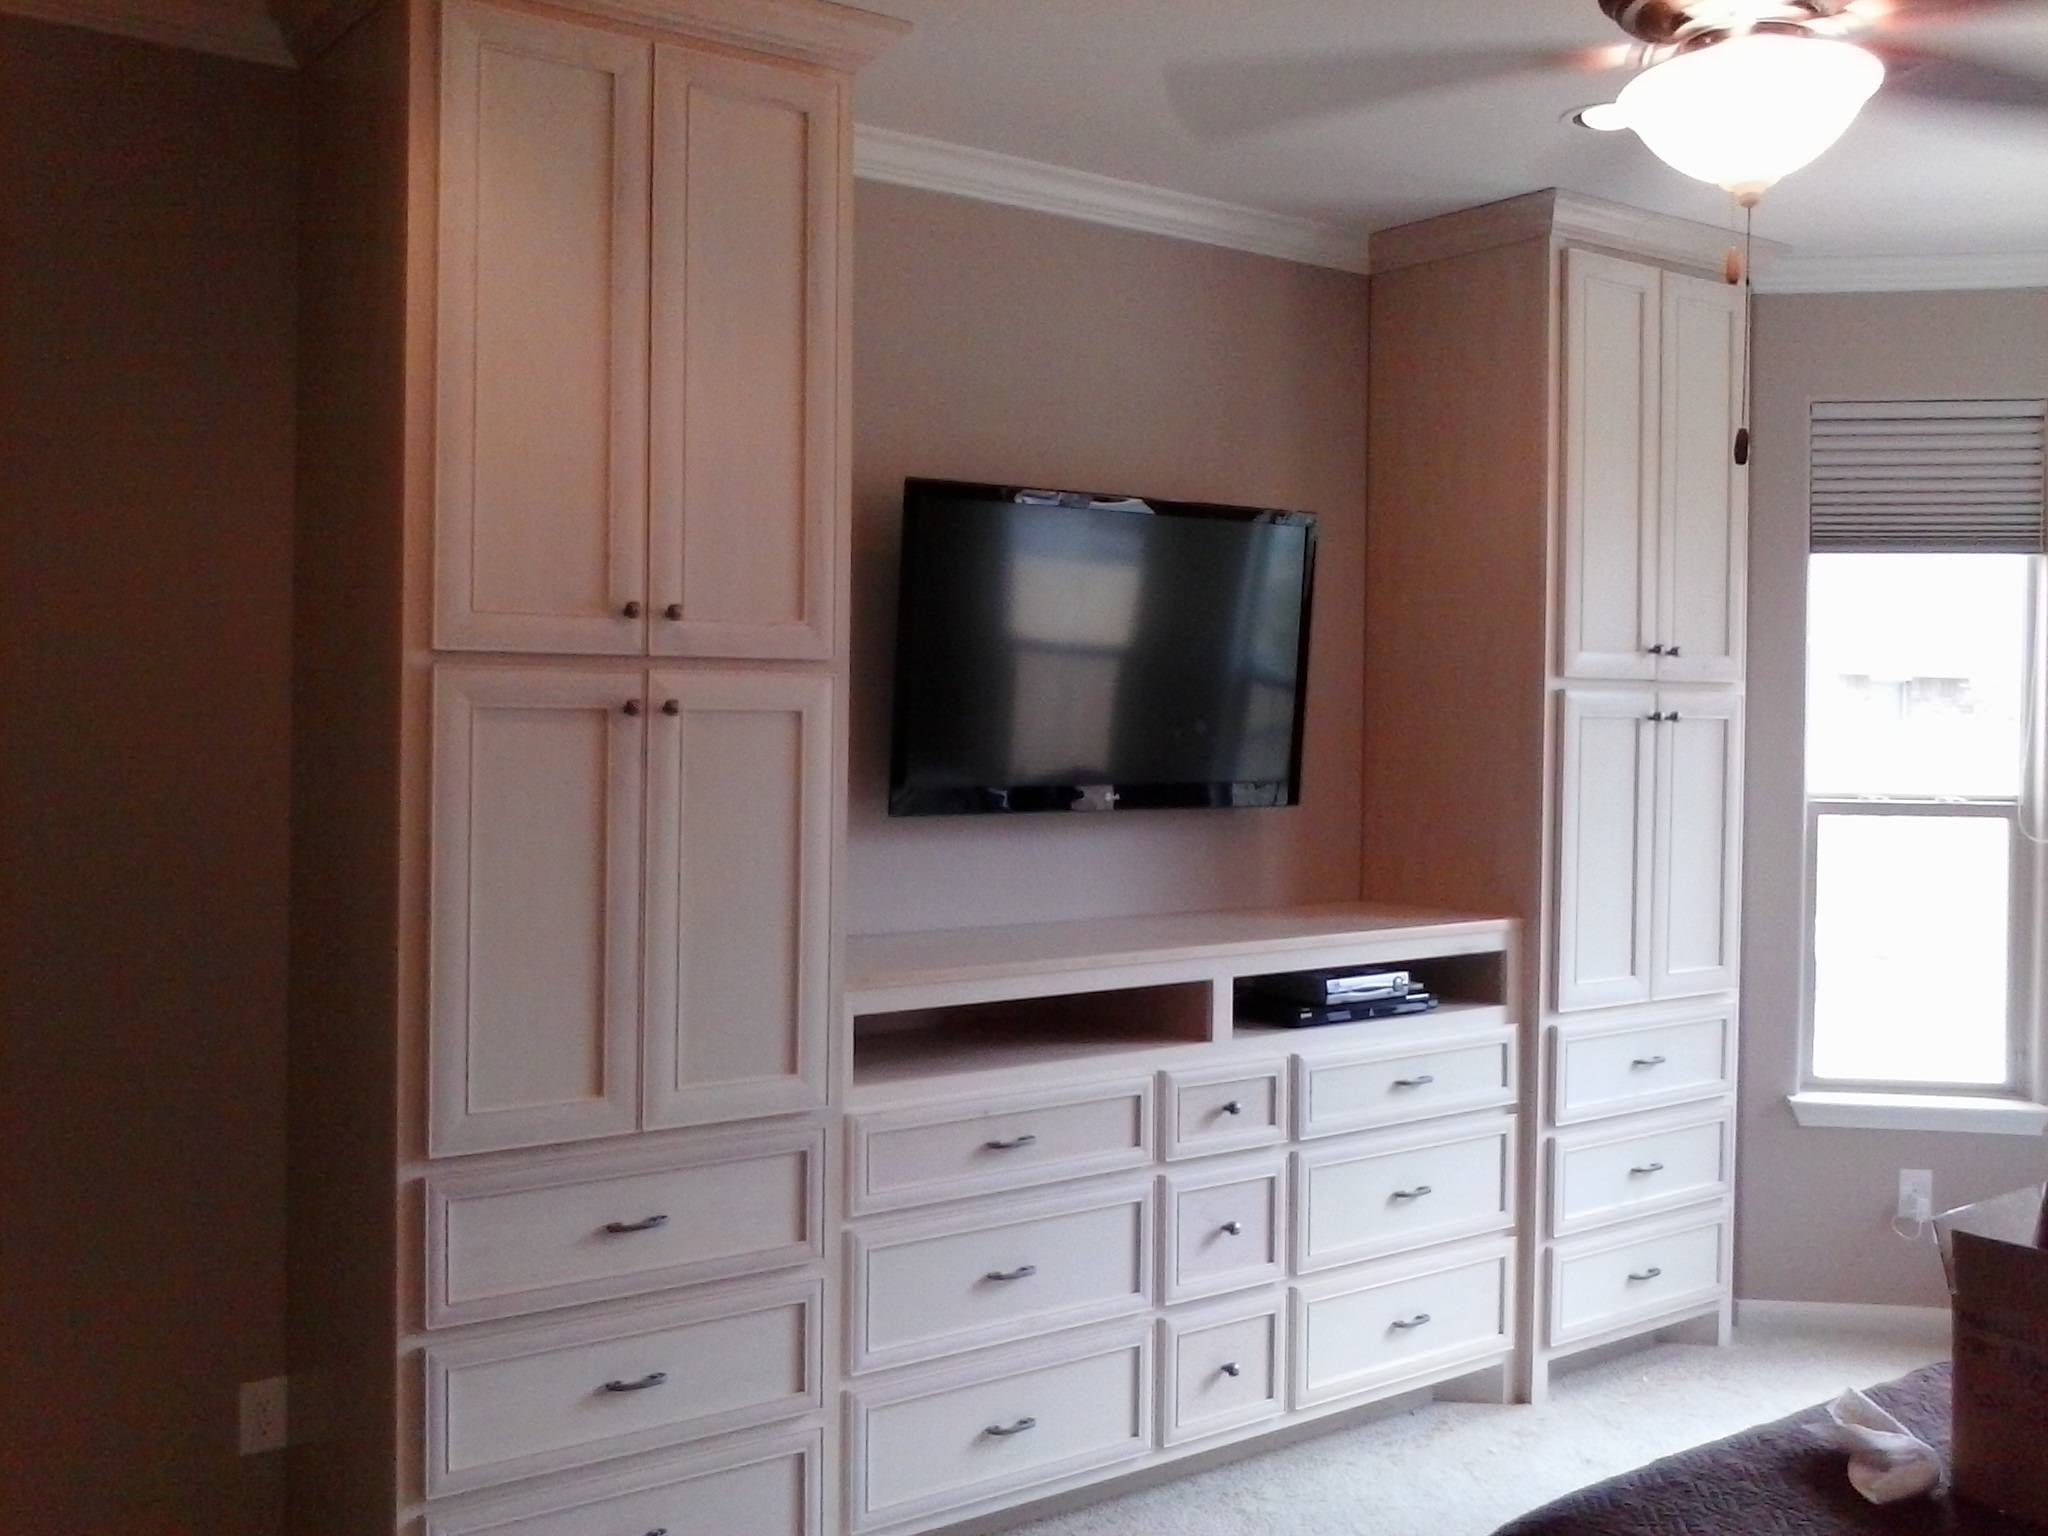 Image Of: Bedroom Wall Units With Drawers And TV